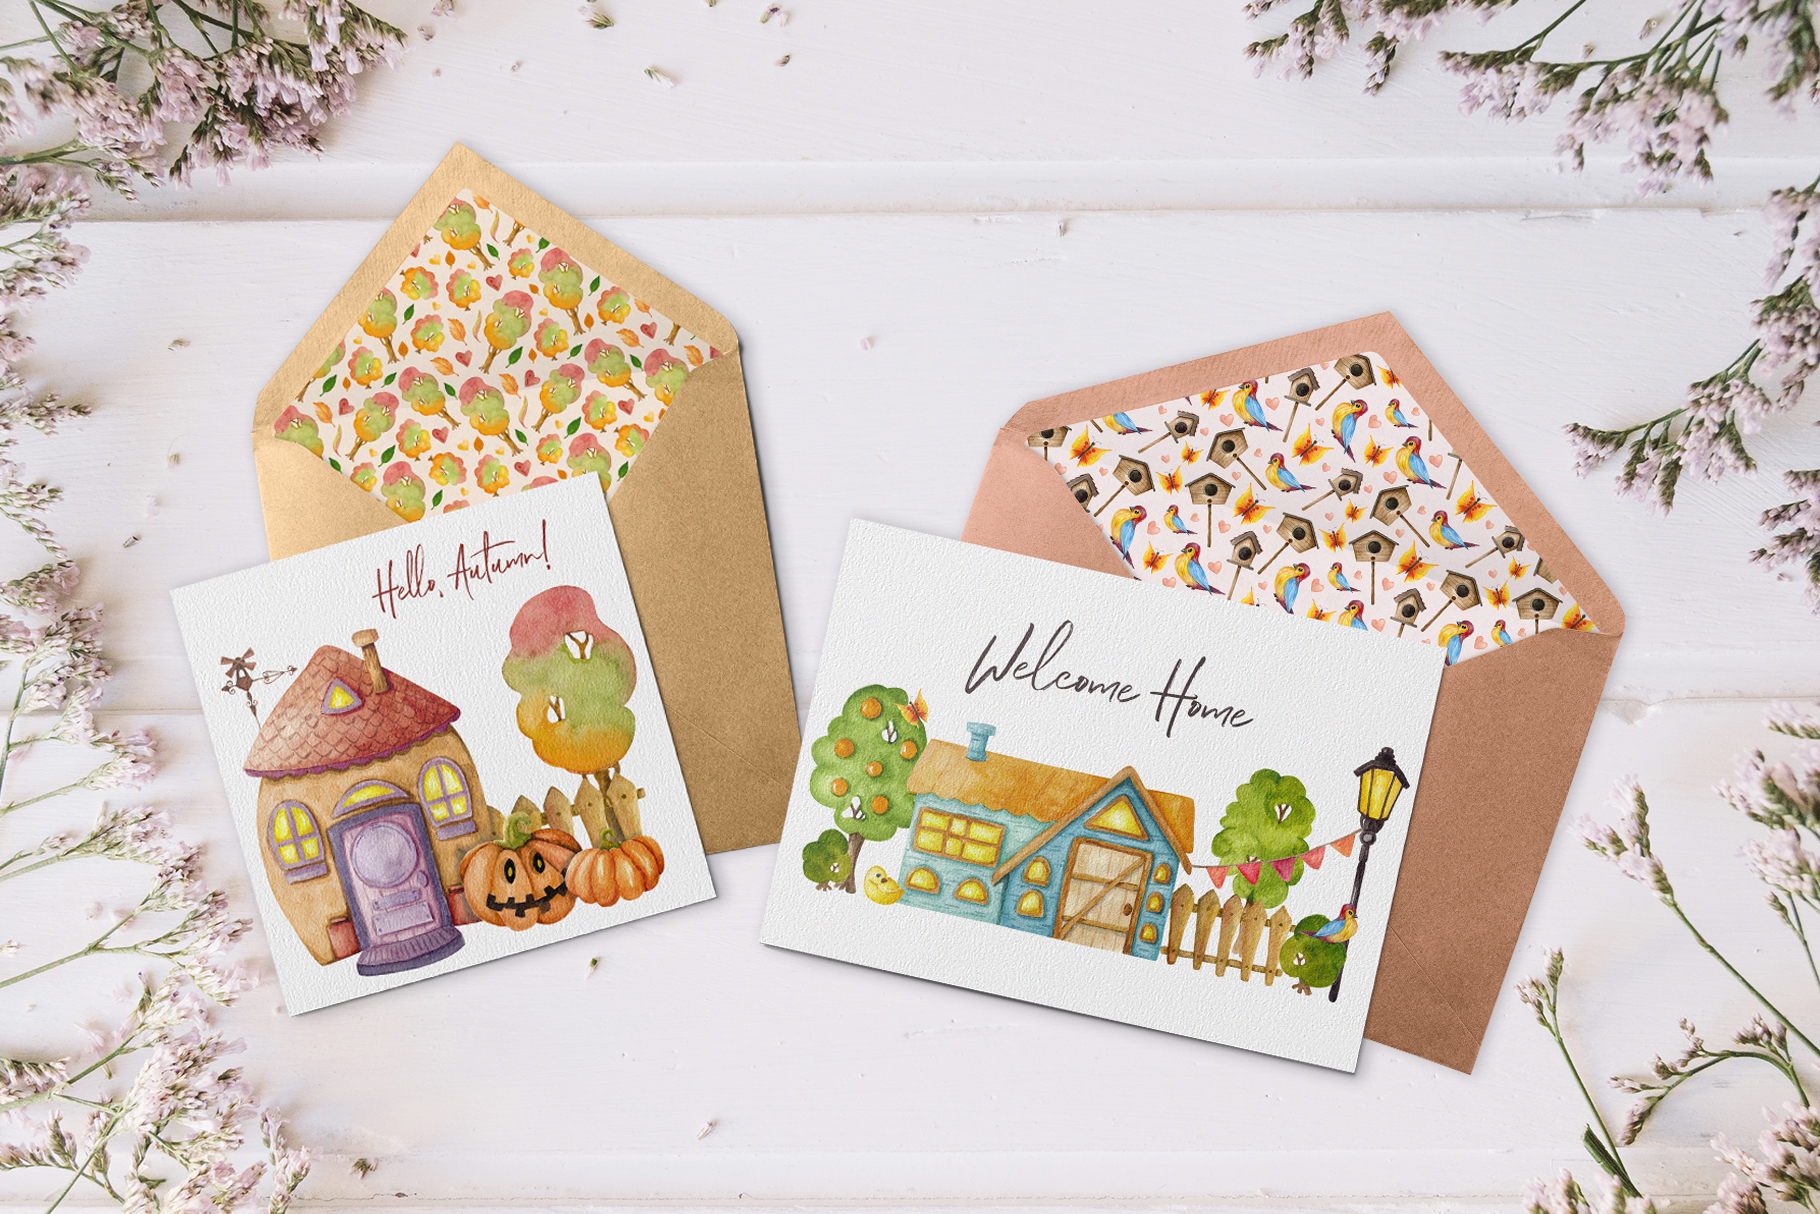 4 Seasons - Watercolor Houses example image 12